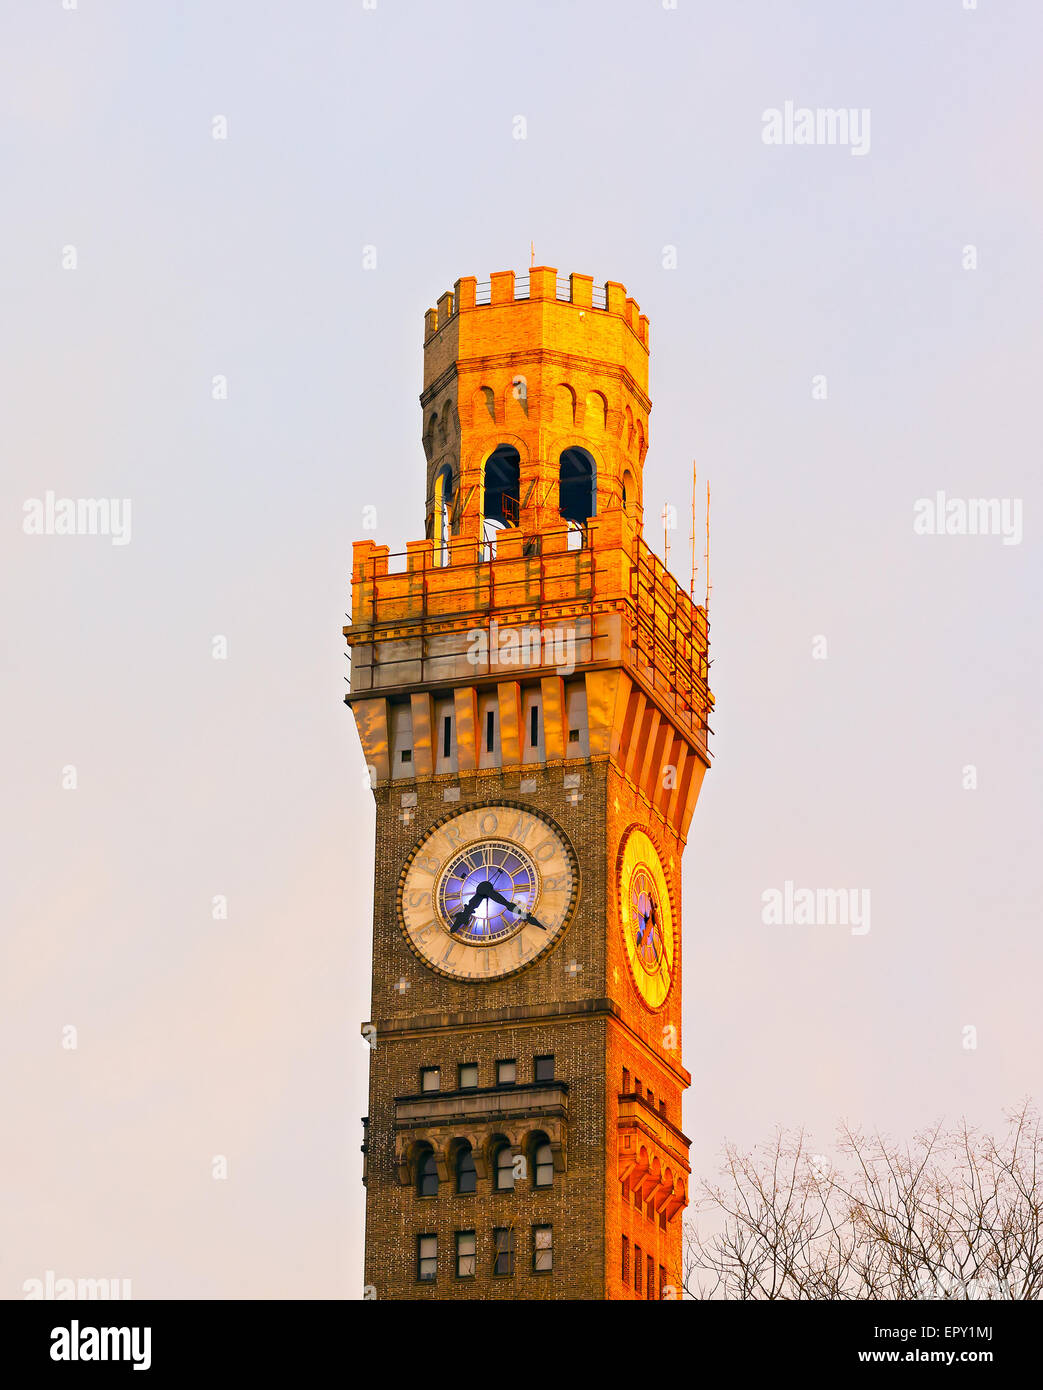 Emerson Bromo-Seltzer Tower in Baltimore downtown. - Stock Image